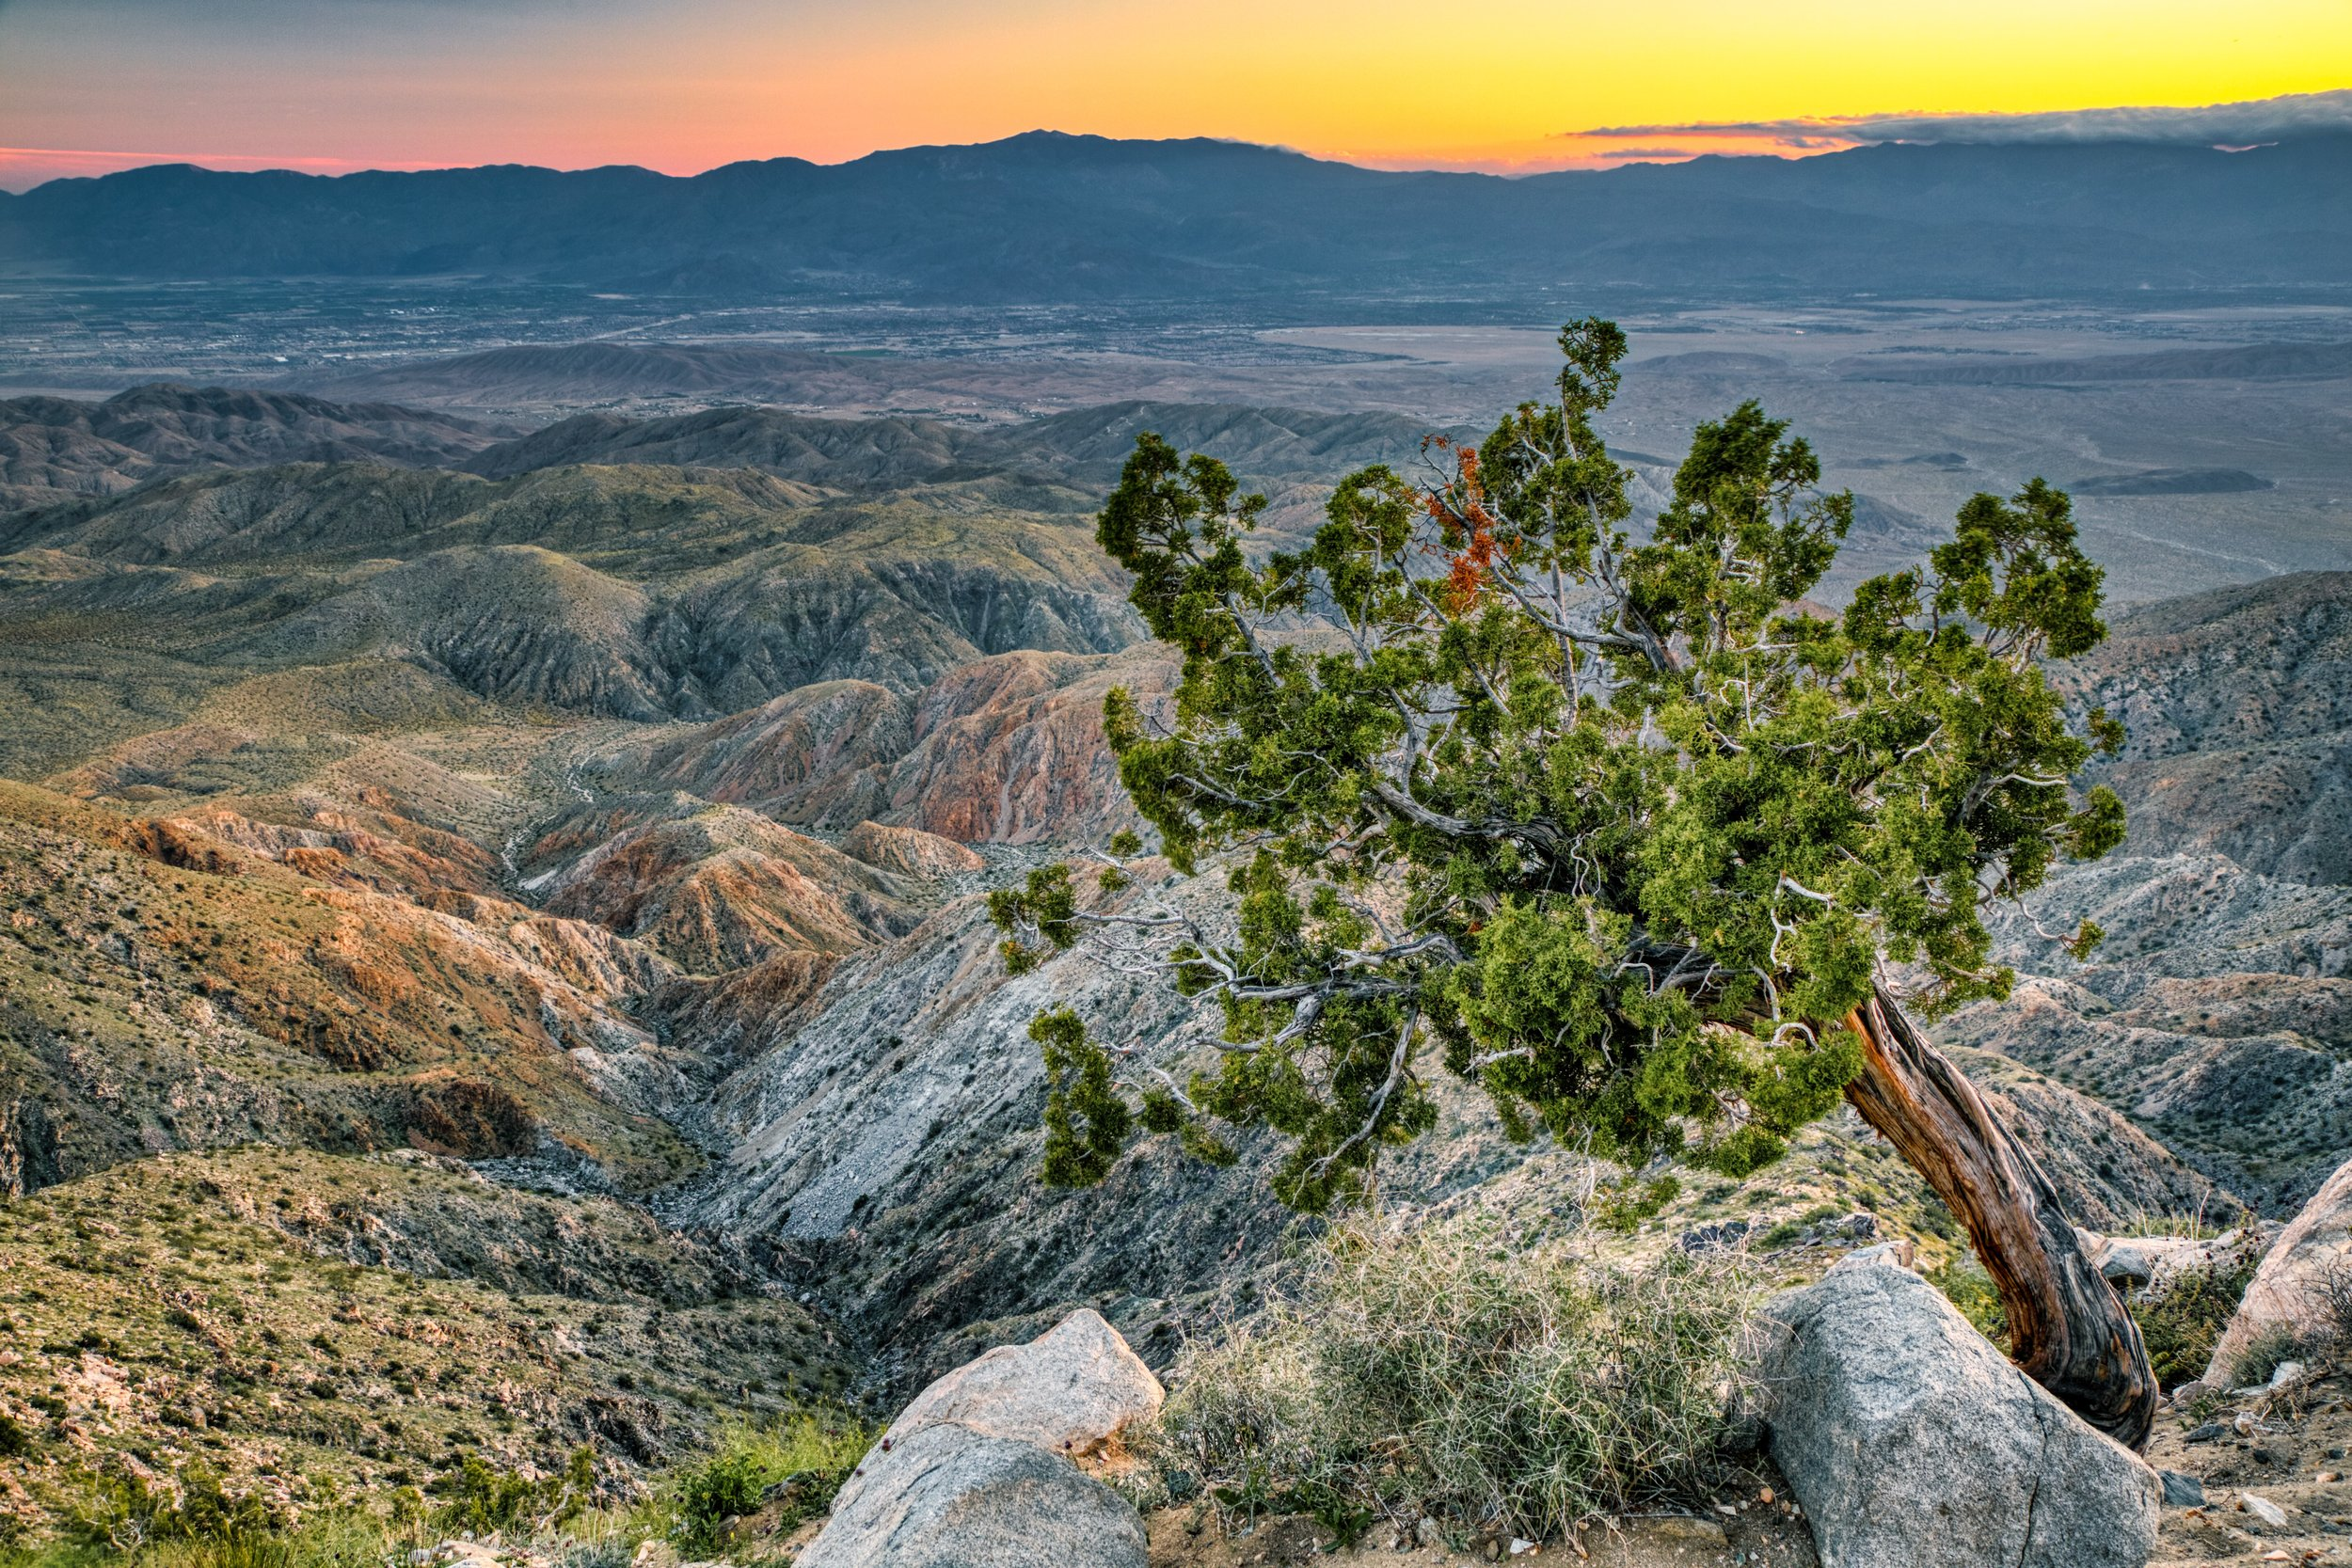 Sunset looking down on Coachella Valley